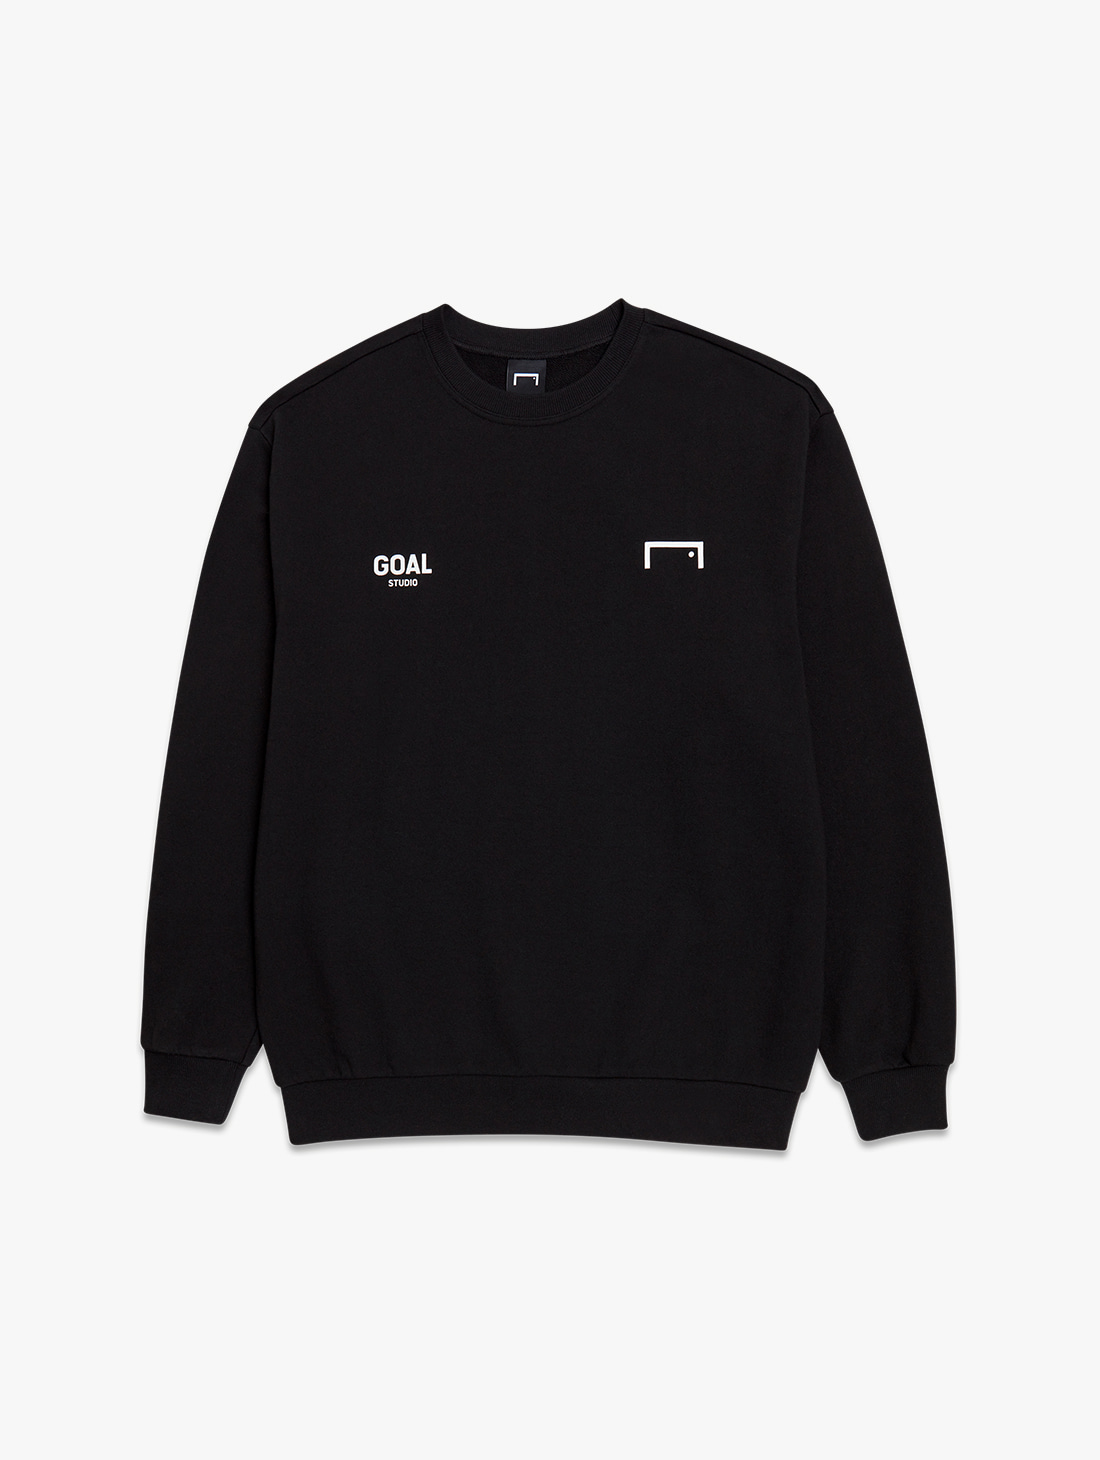 SIGNATURE LOGO SWEATSHIRT 2.0 (3 Colors)